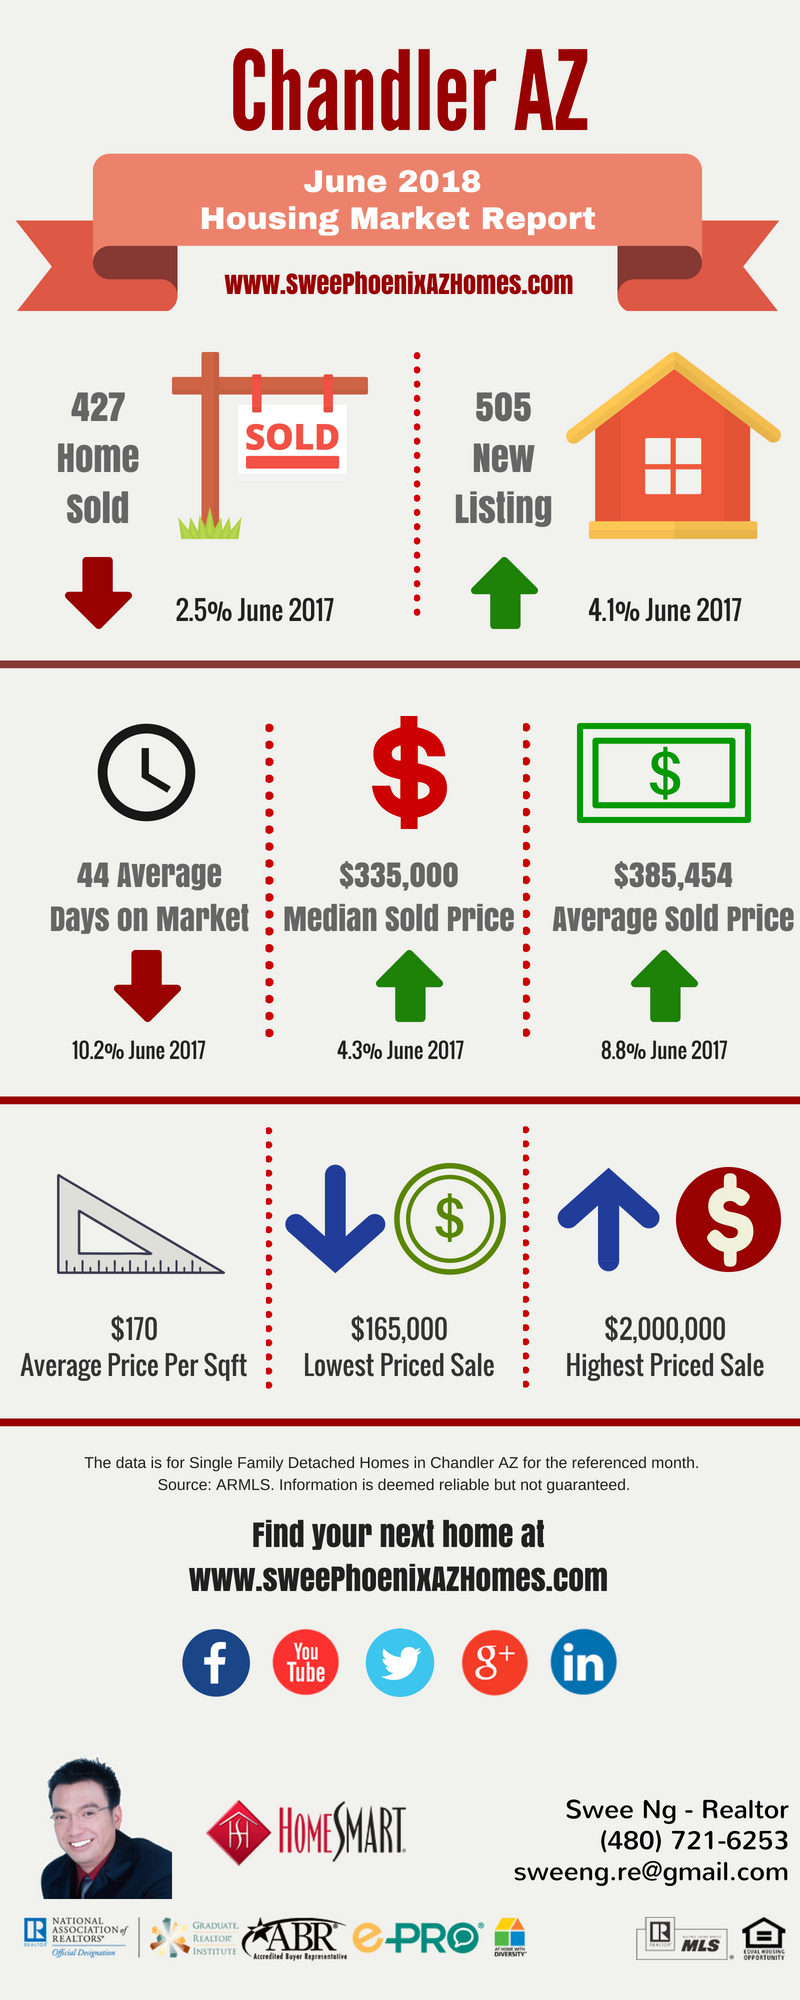 Chandler AZ Housing Market Update June 2018 by Swee Ng, House Value and Real Estate Listings